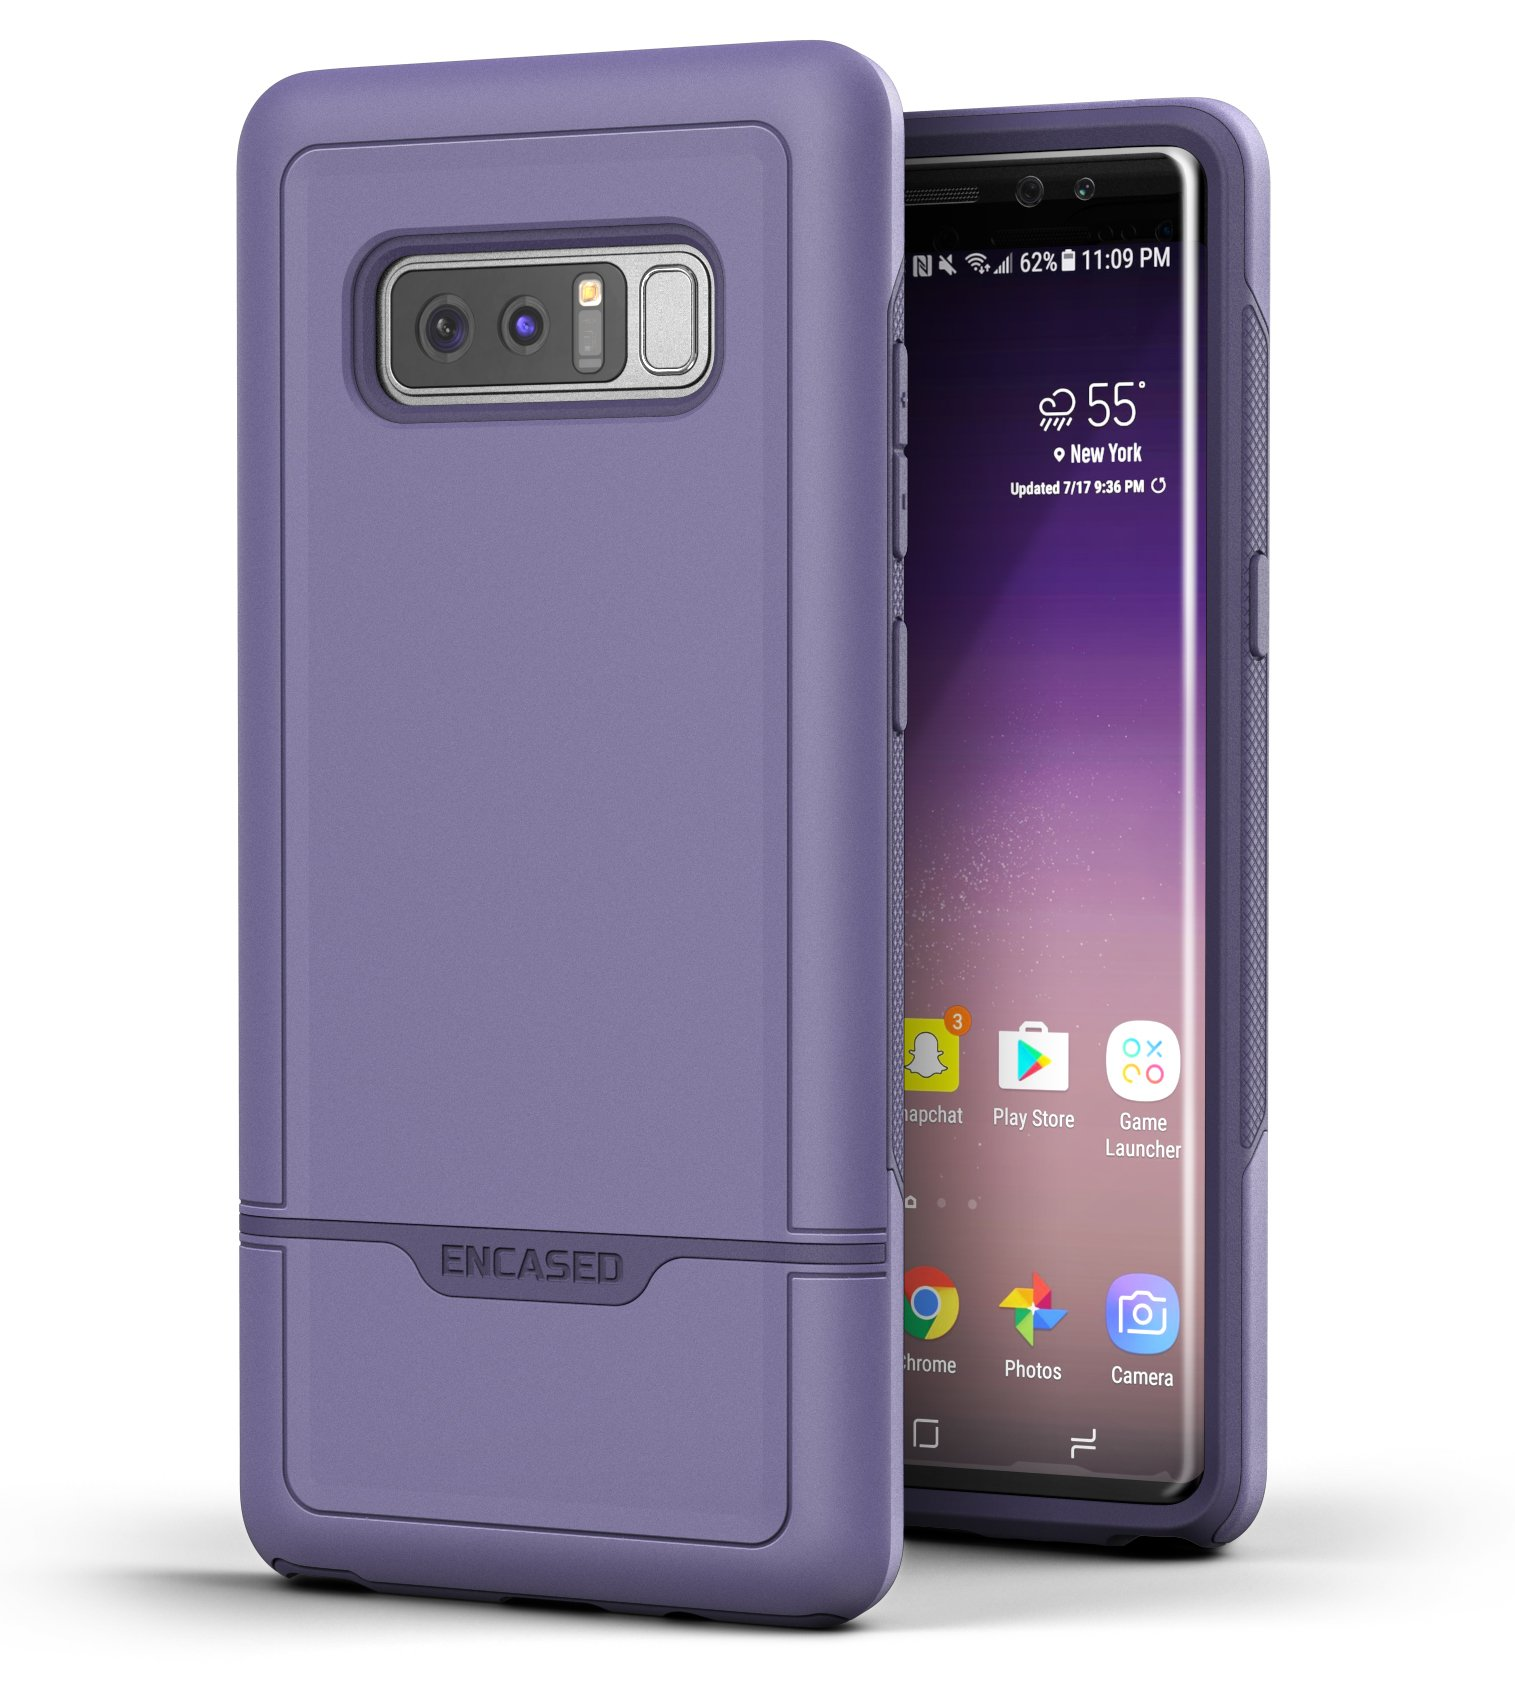 Encased Galaxy Note 8 Tough Case, Purple Rebel Armor Case for Samsung Galaxy Note 8 (Military Grade Protection) by Encased